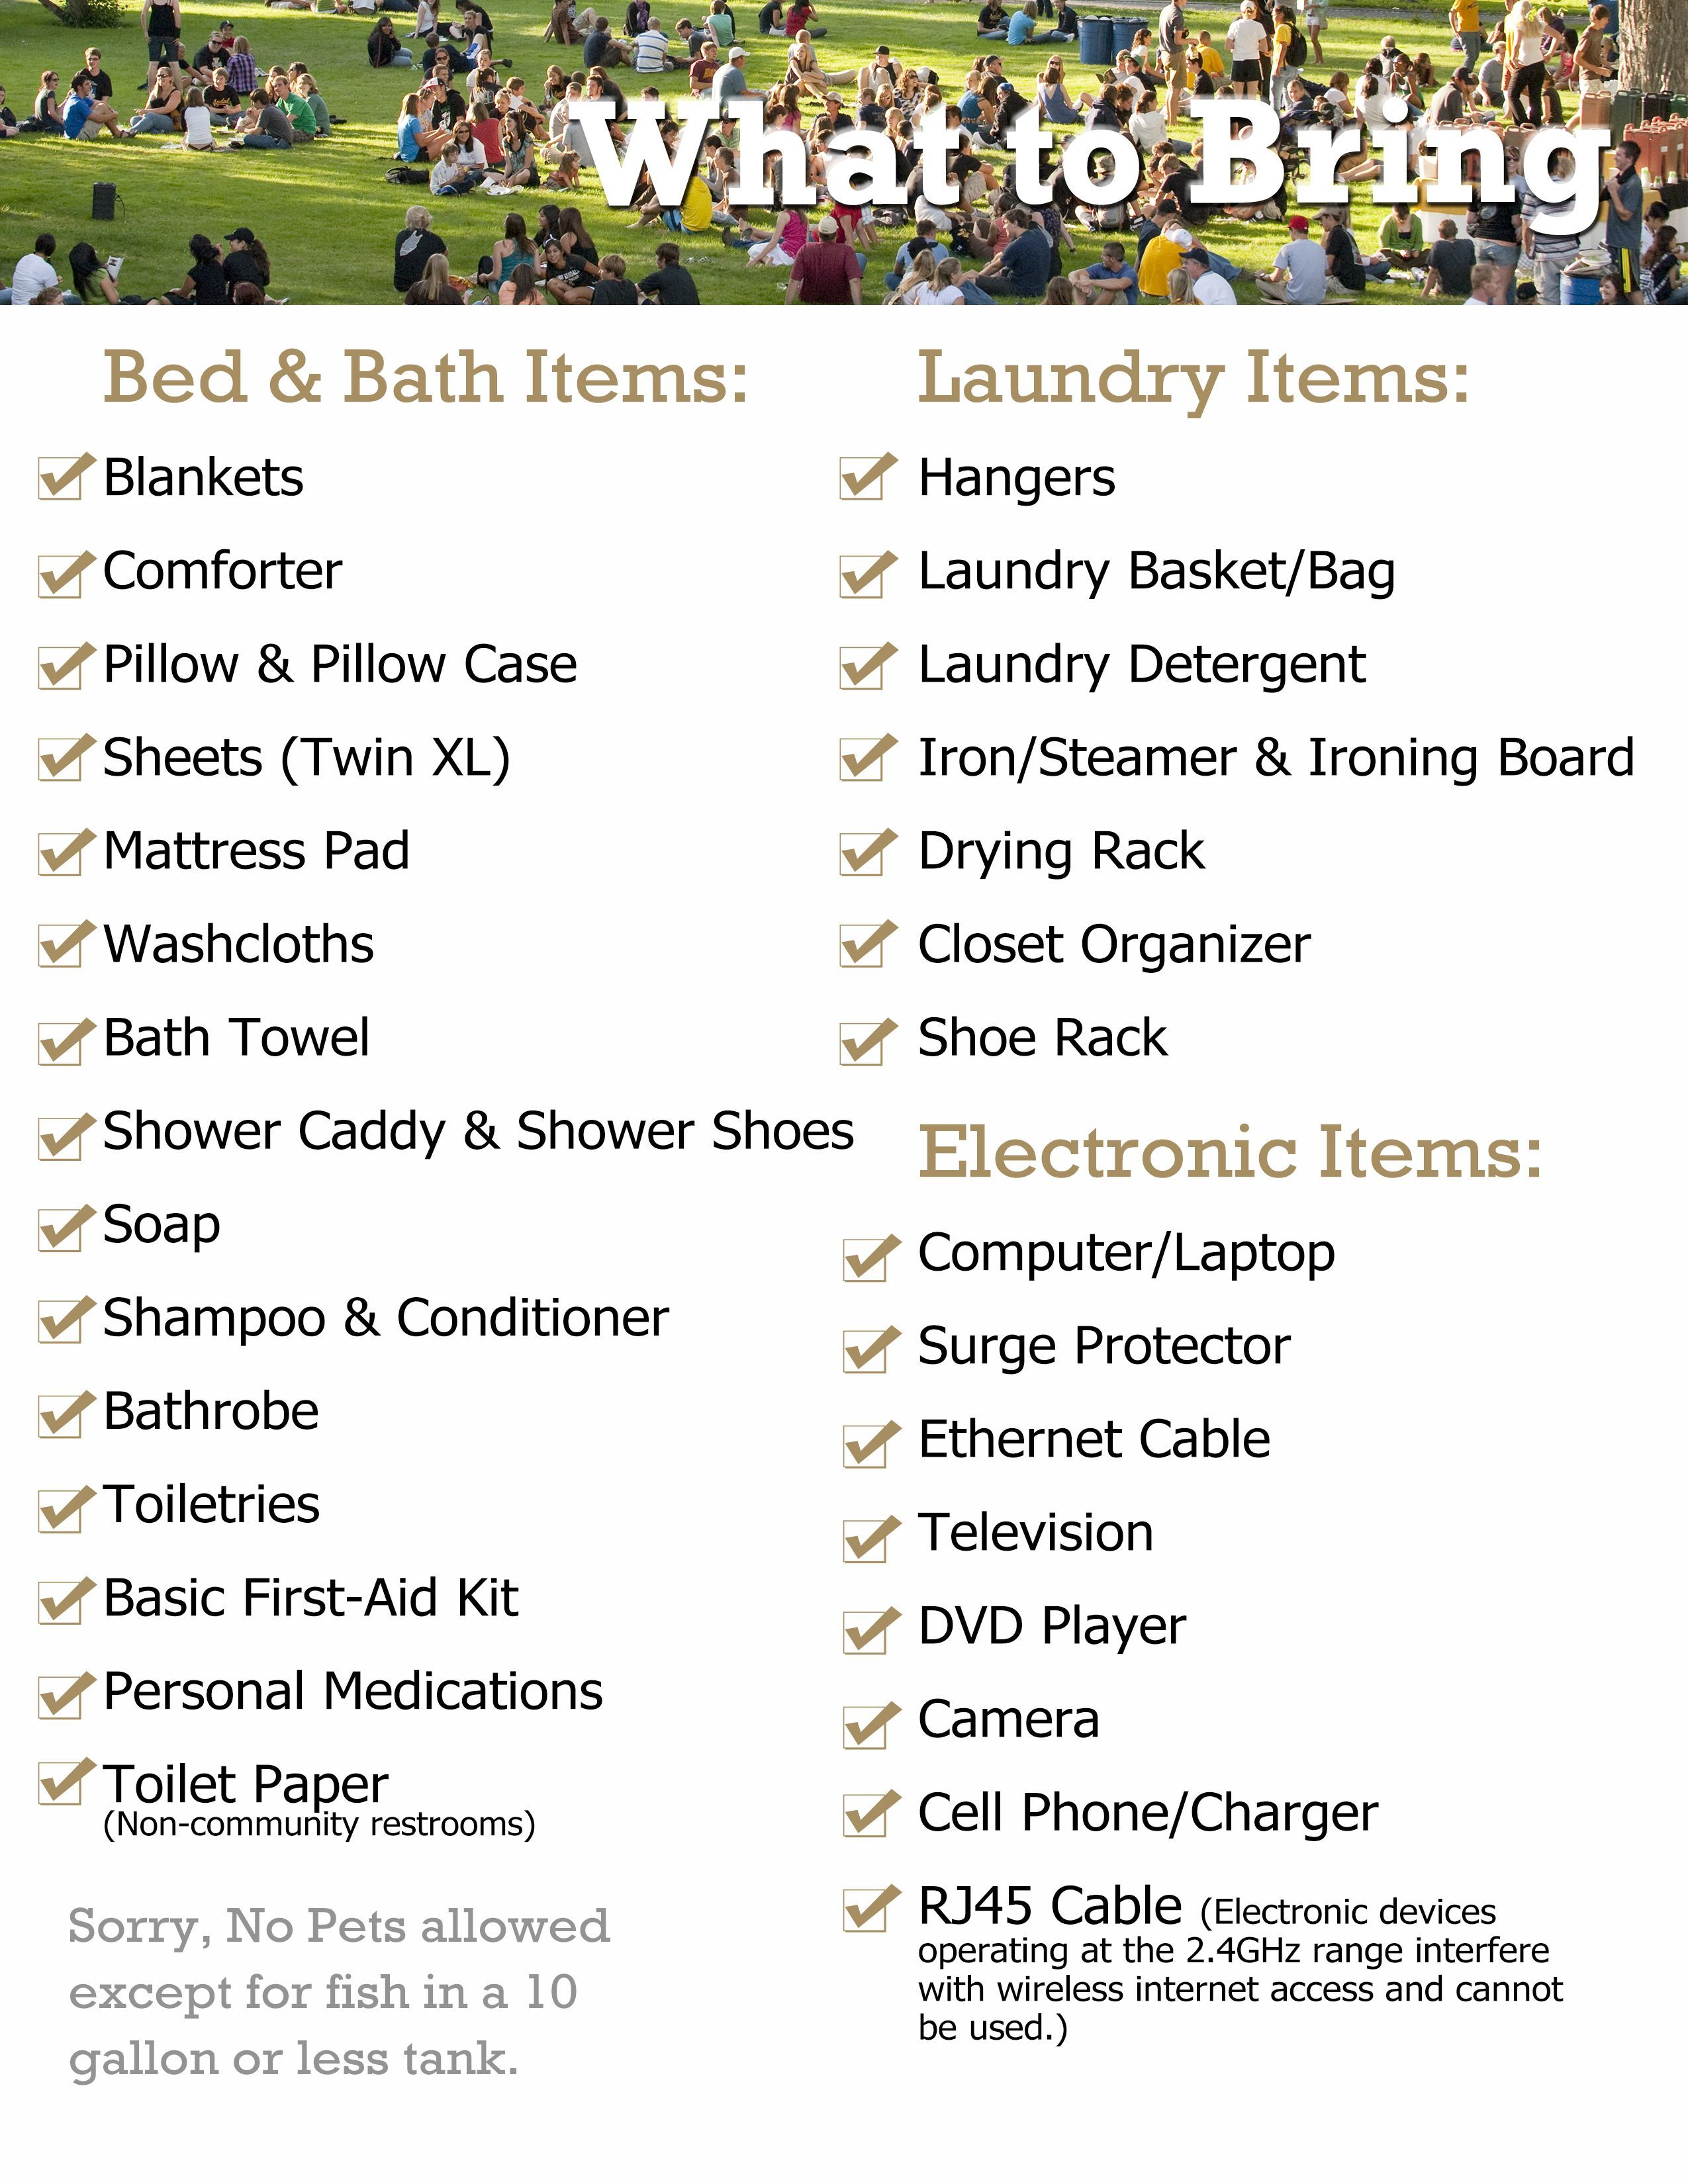 What To Bring List Bed Bath Items Laundry Items And Electronic